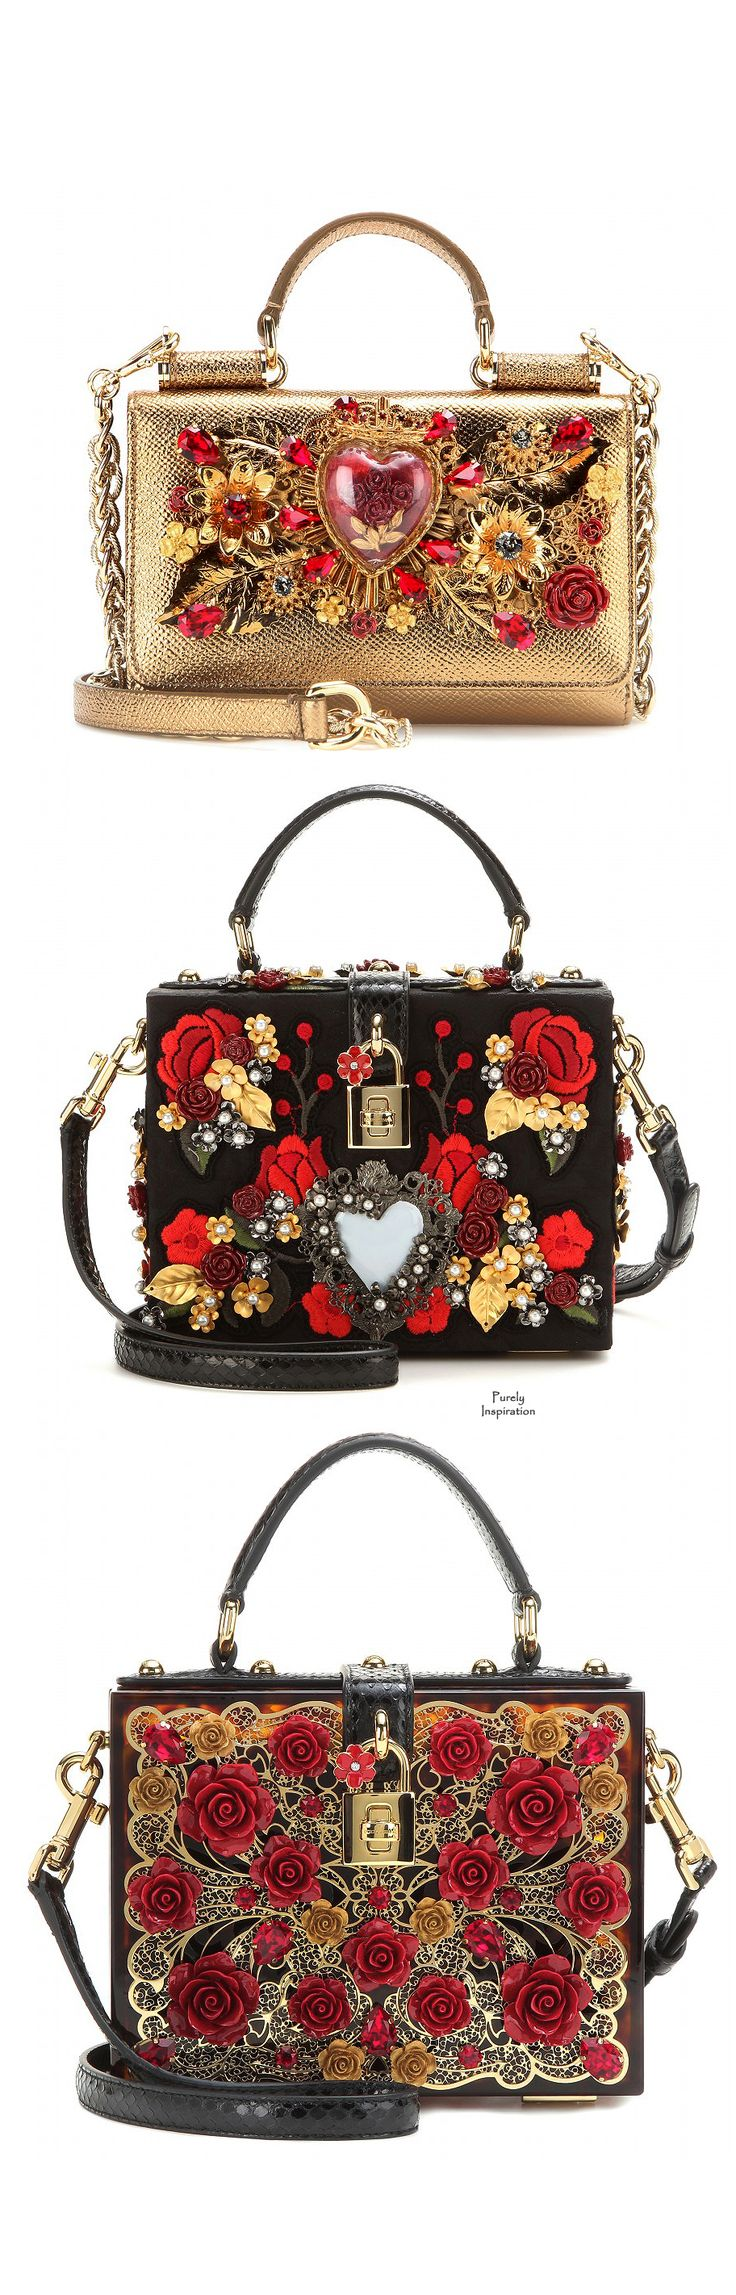 Dolce & Gabbana shoulder bags SS2015 | Purely Inspiration